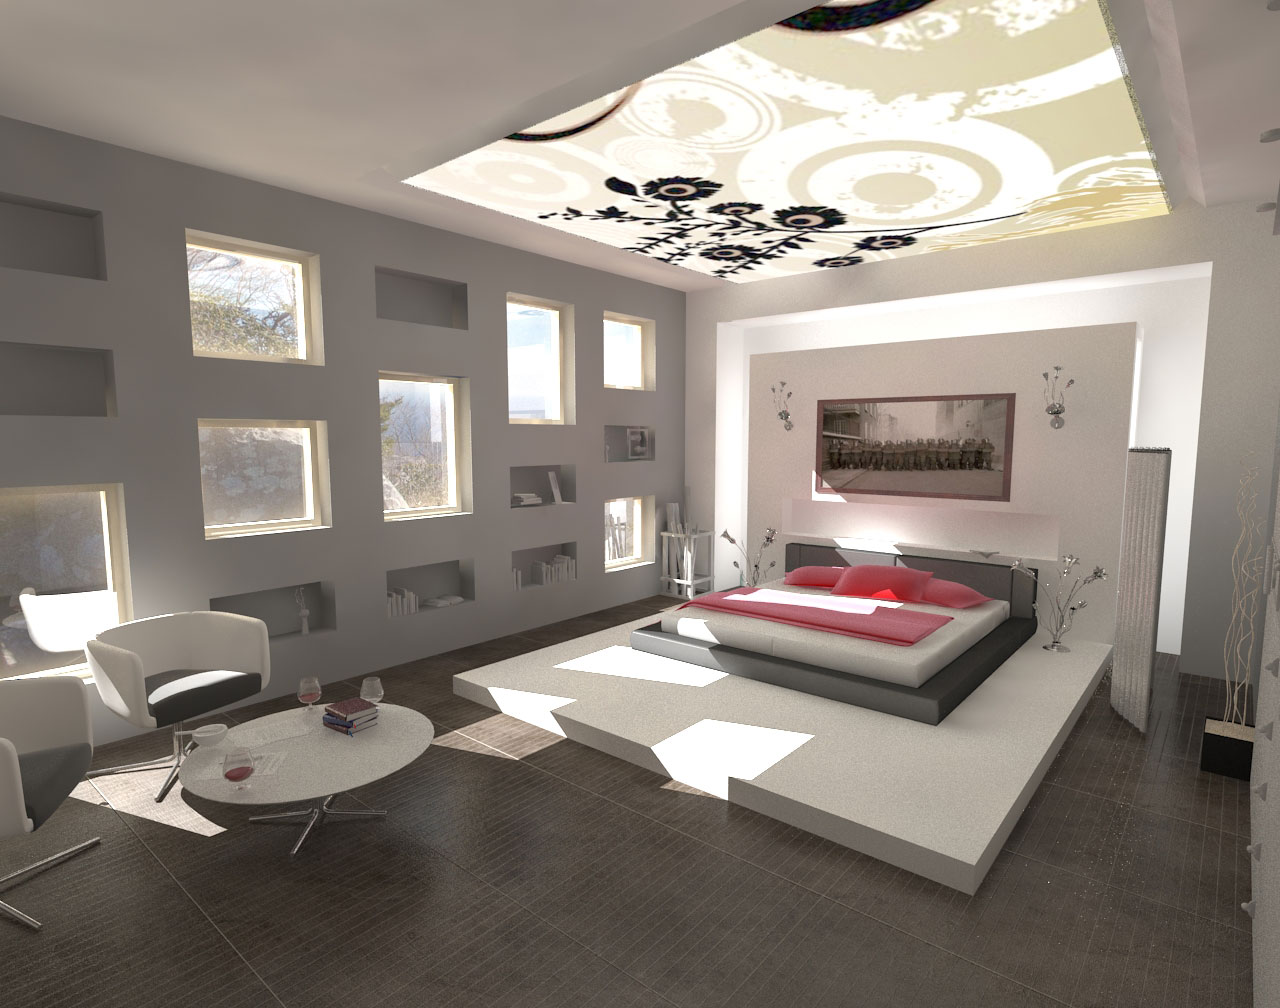 Minimalist Interior Design Decorations Minimalist Design Modern Bedroom Interior